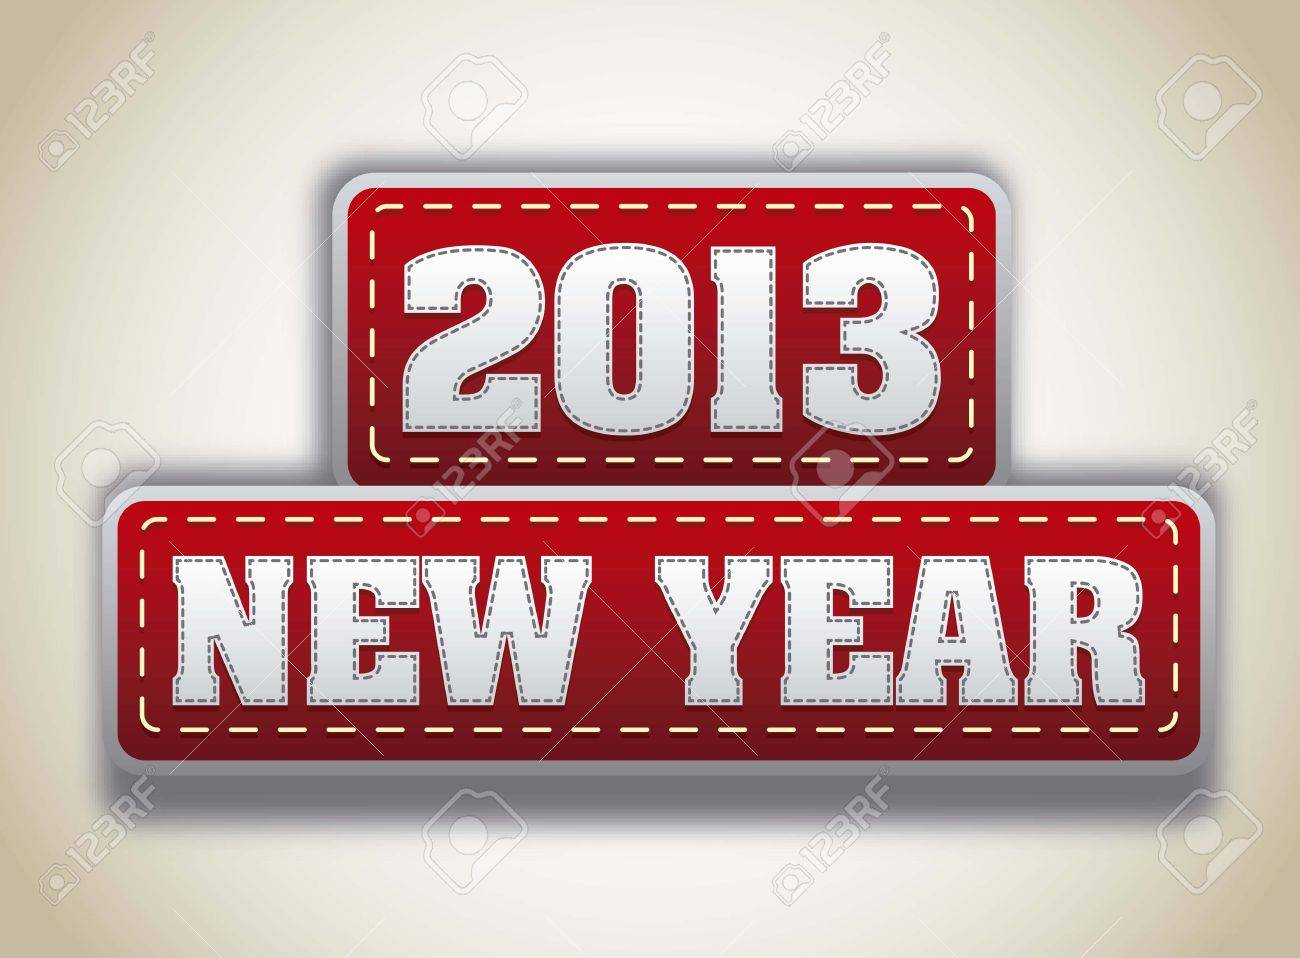 2013 year over red tags over vintage background. vector illlustration Stock Vector - 15136052